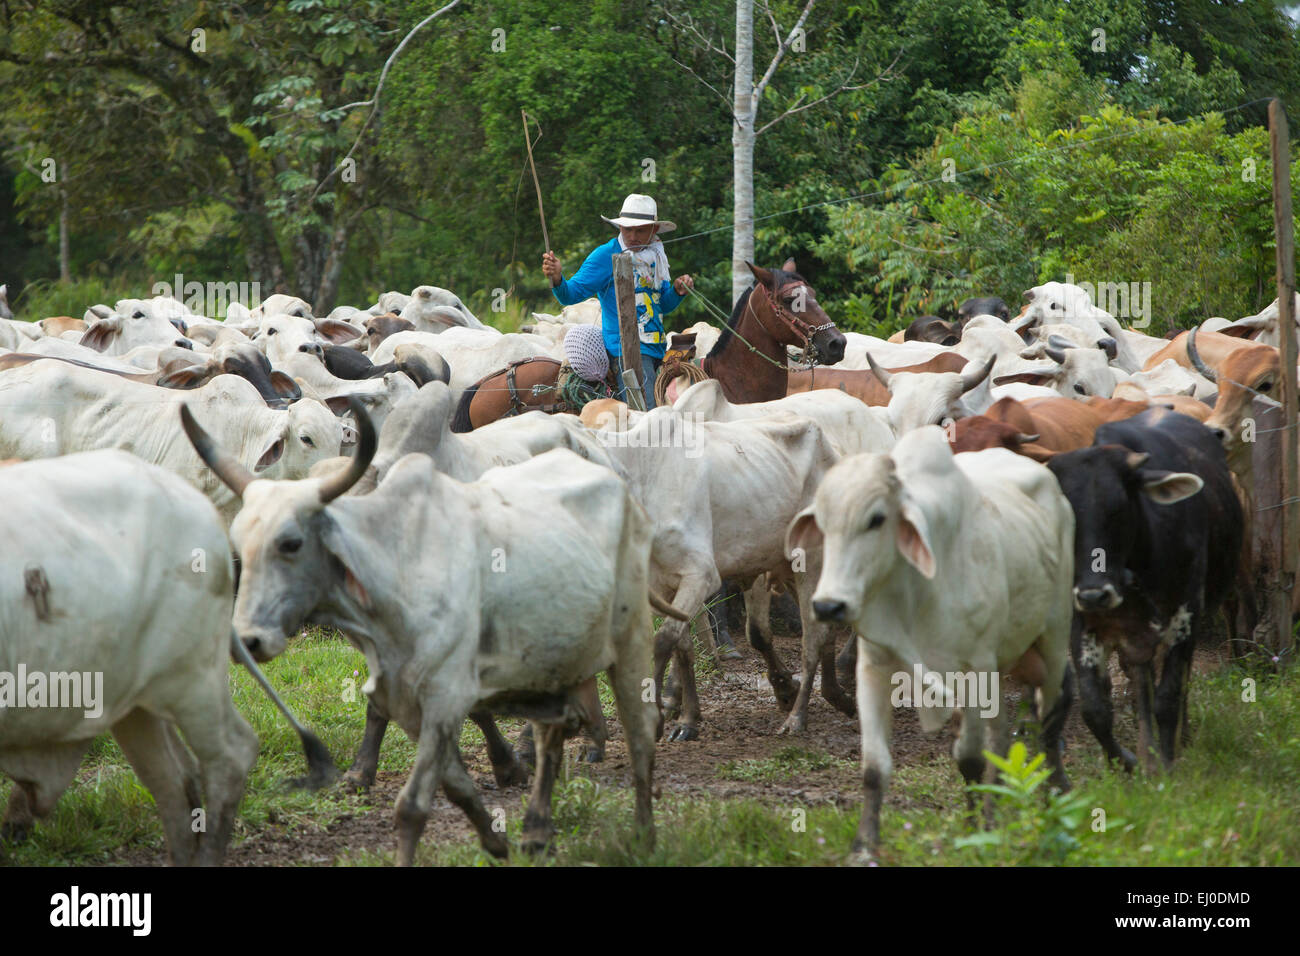 South America, Latin America, Colombia, cattle breeding, cattle, Gauchos, - Stock Image